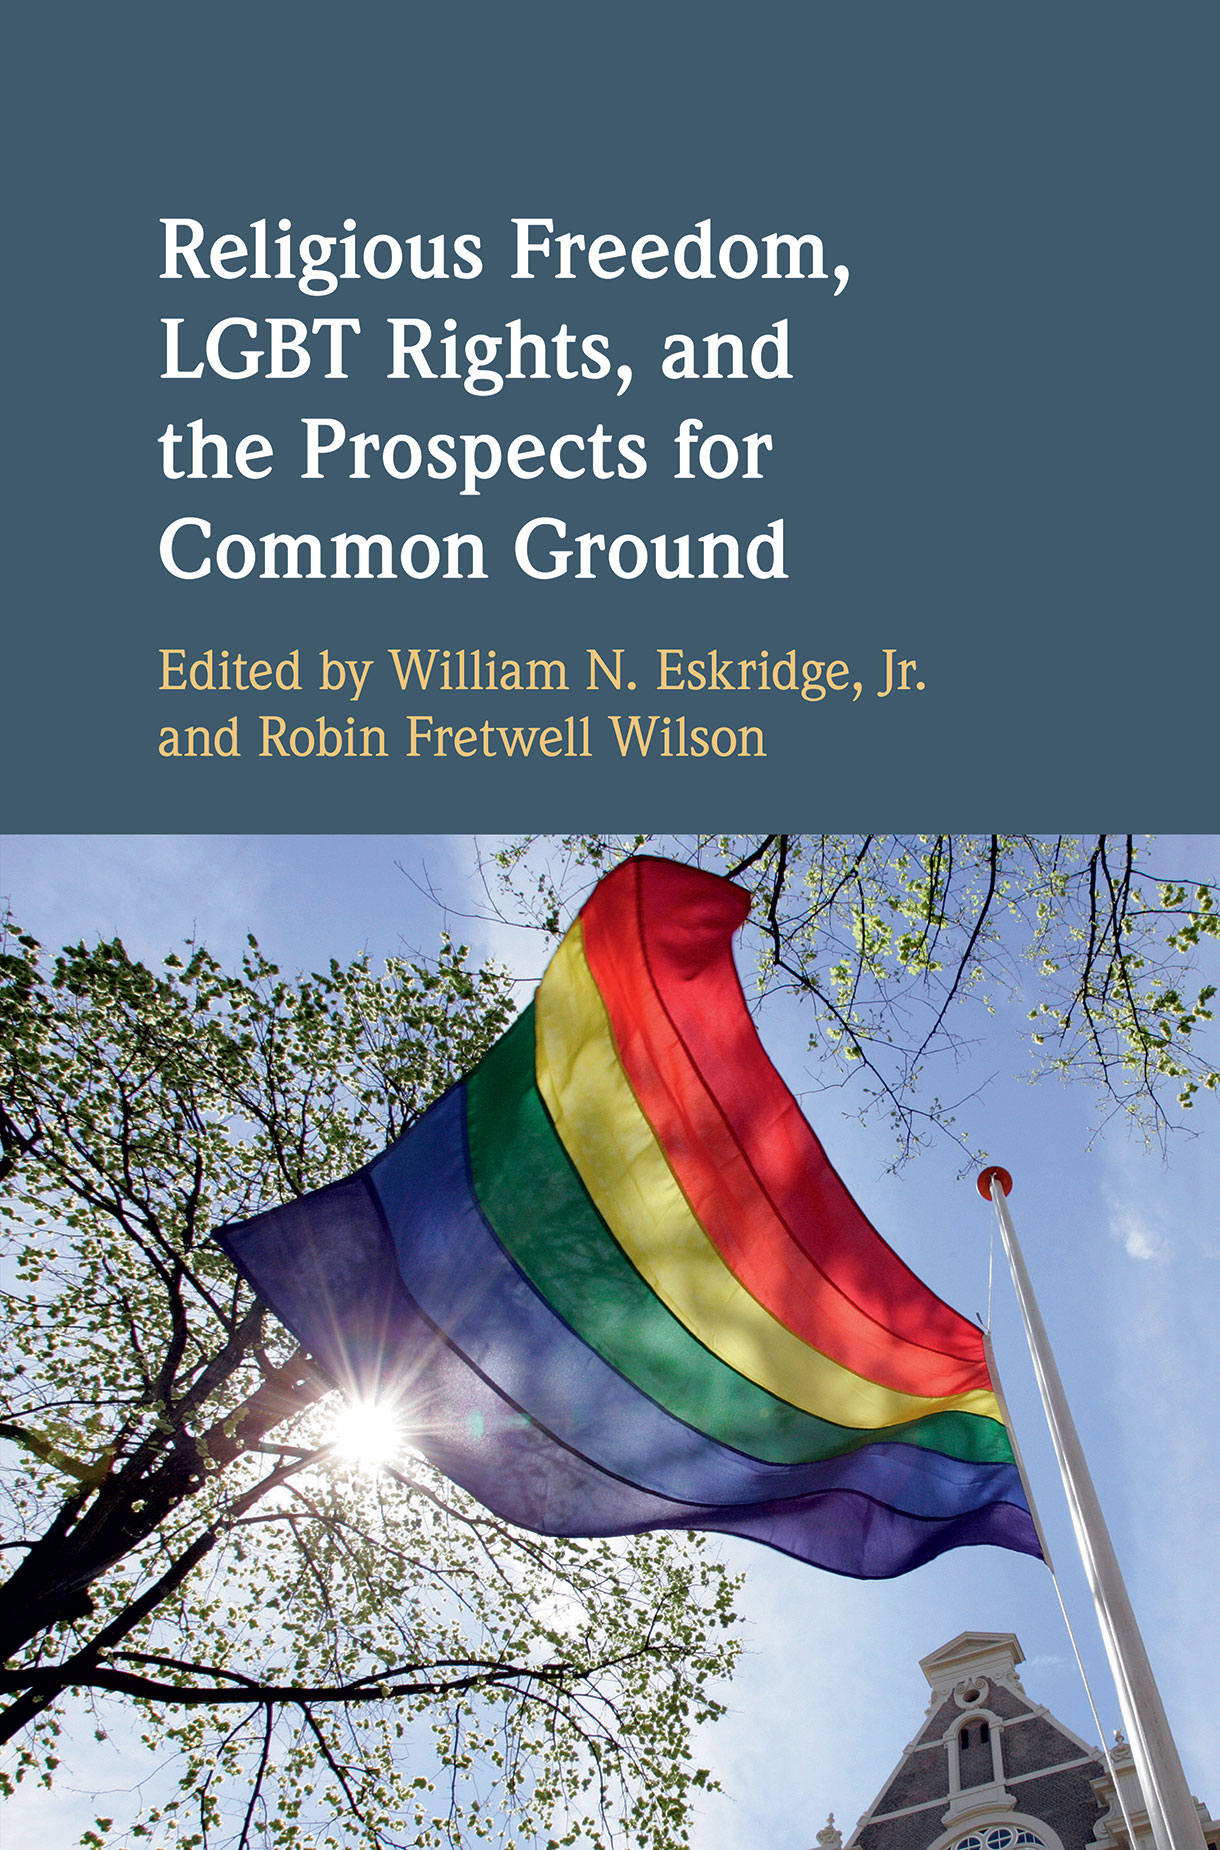 Religious Freedom, LGBT Rights, and Prospects for Common Ground